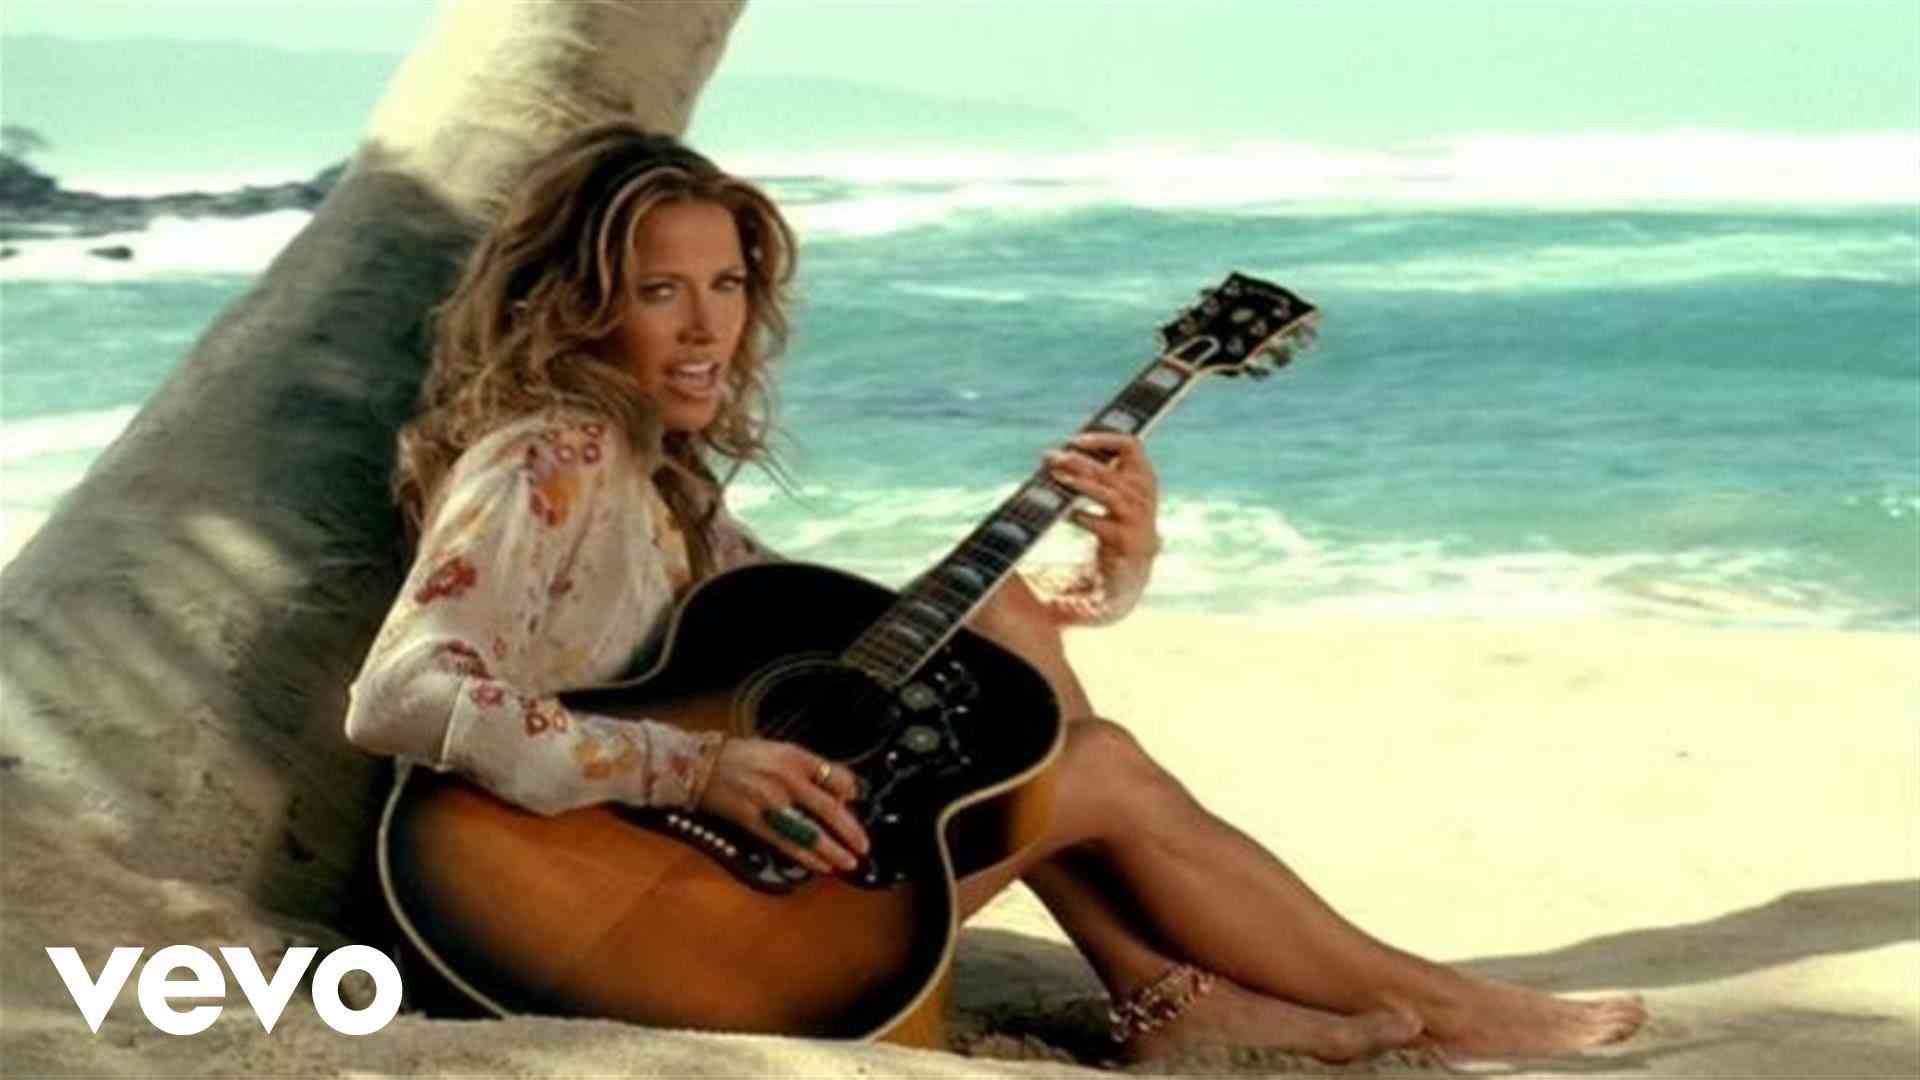 Sheryl Crow - Soak Up The Sun - YouTube